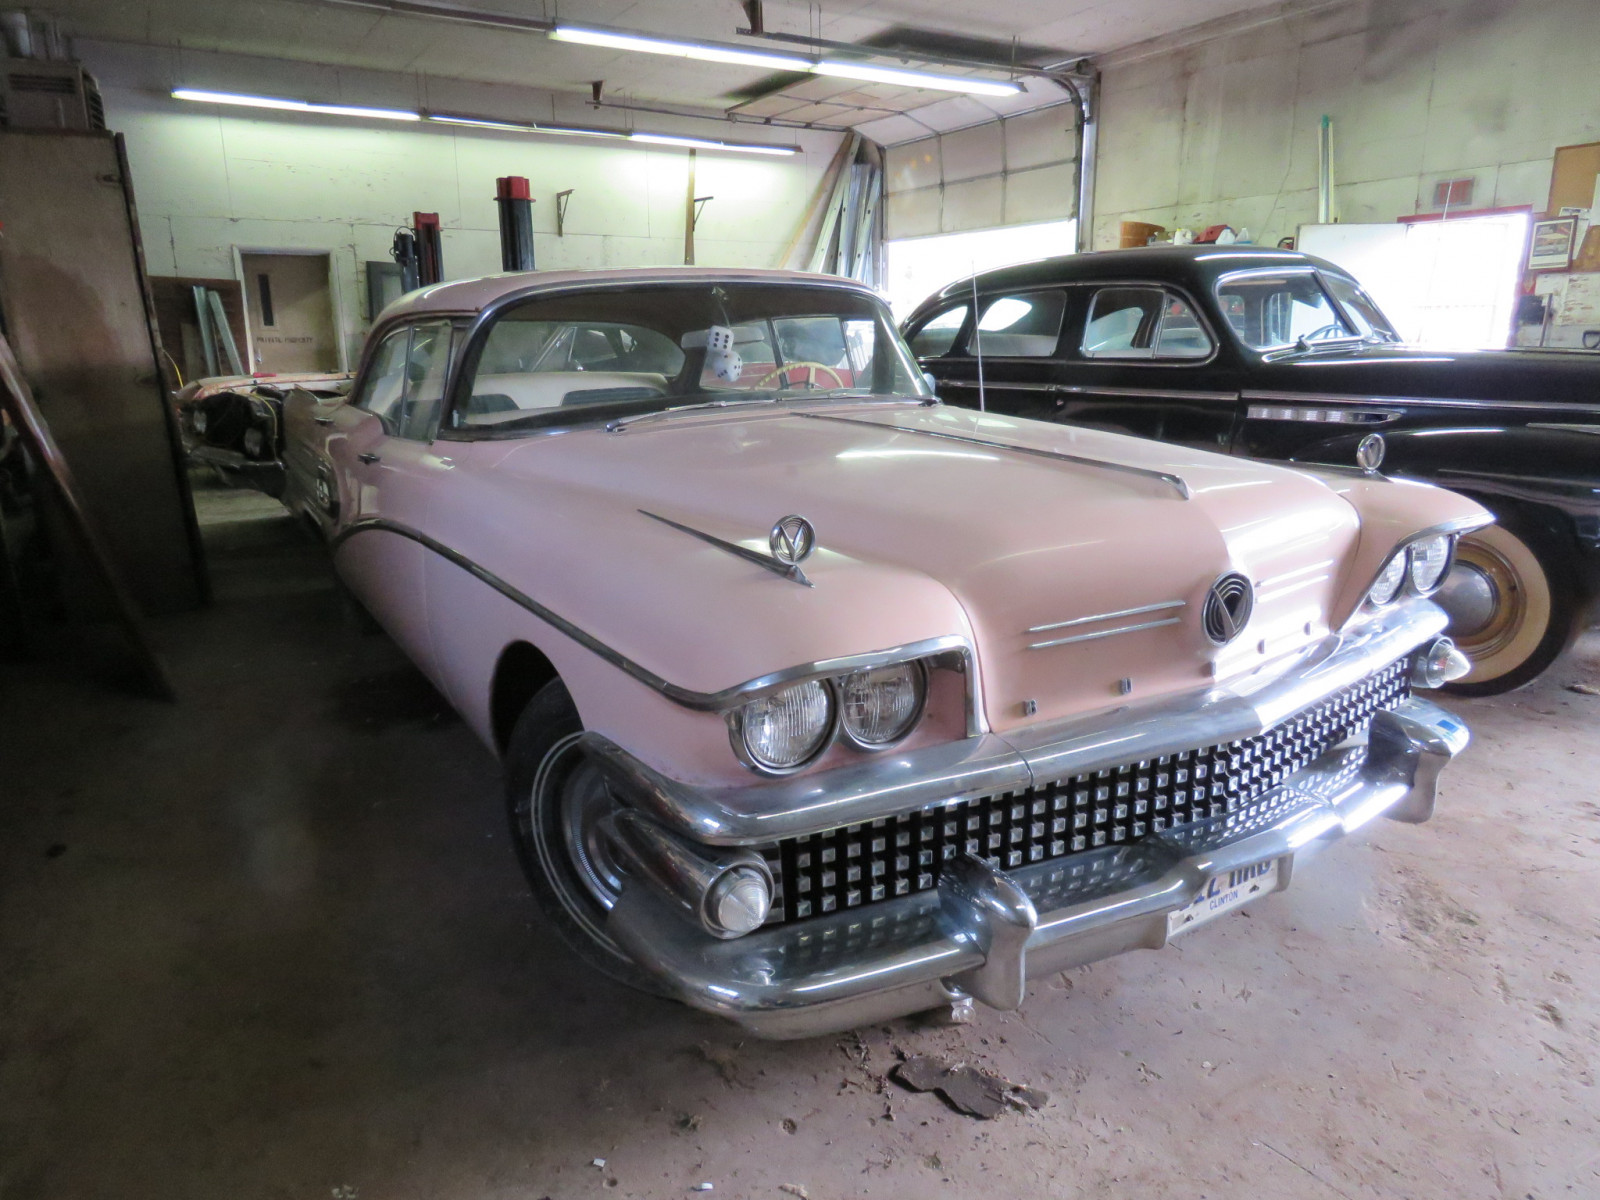 1958 Buick Special 4dr HT - Image 3